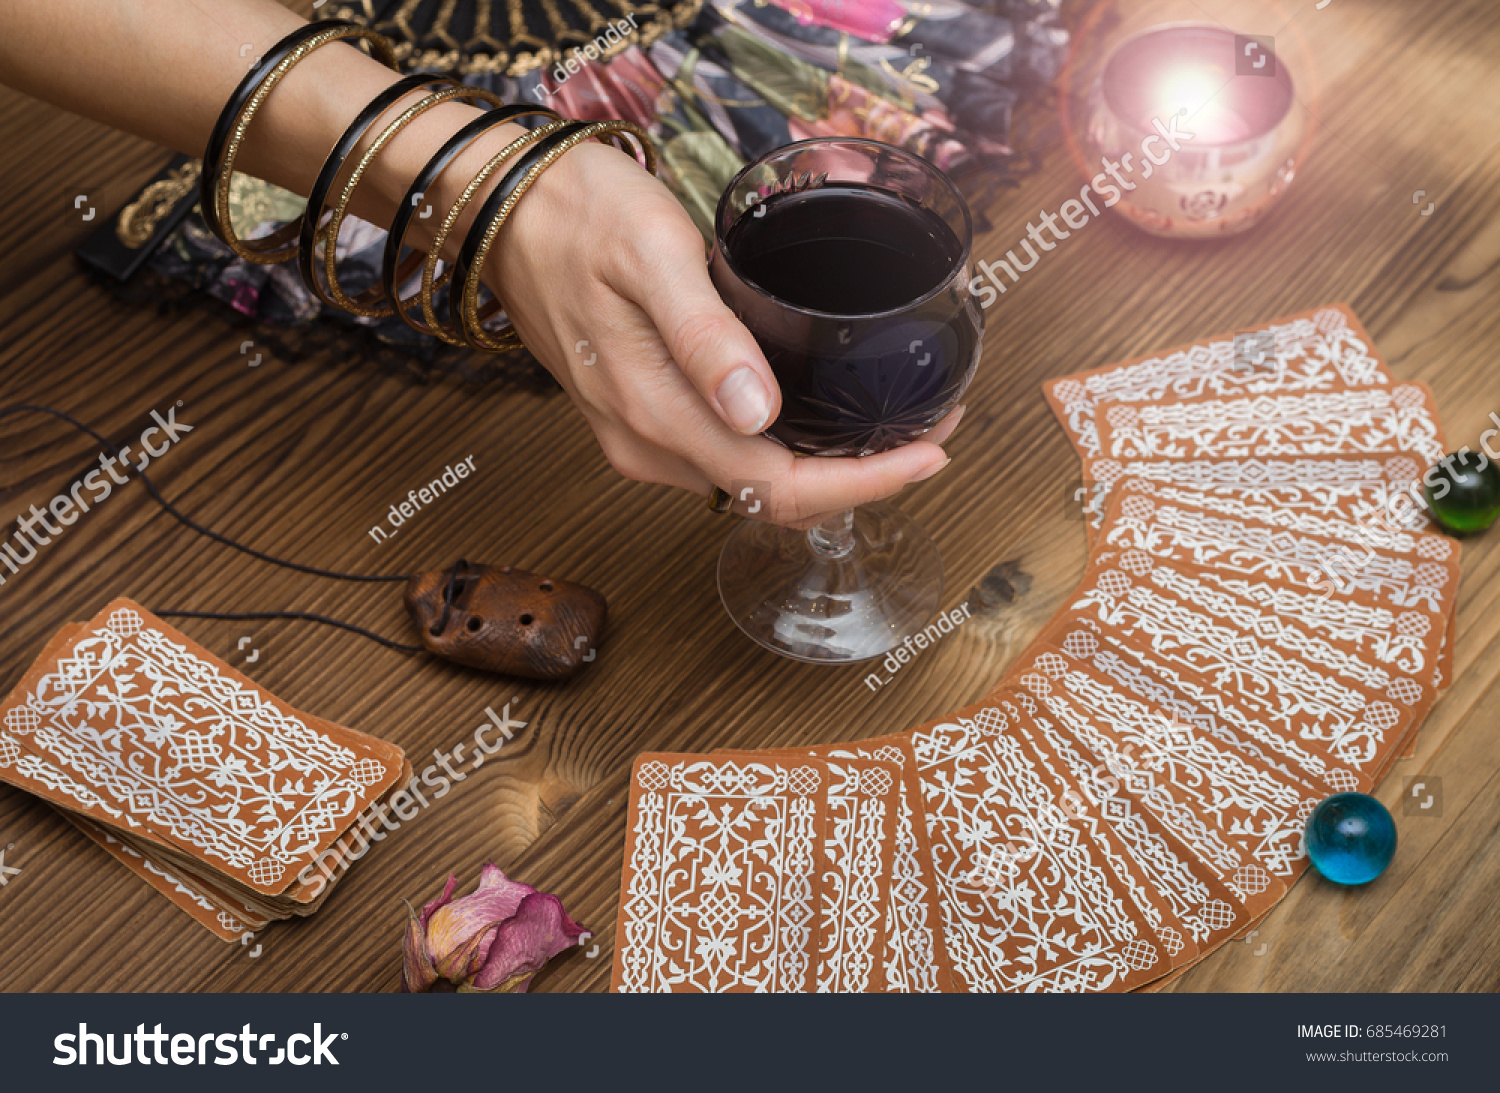 Divination by the groom